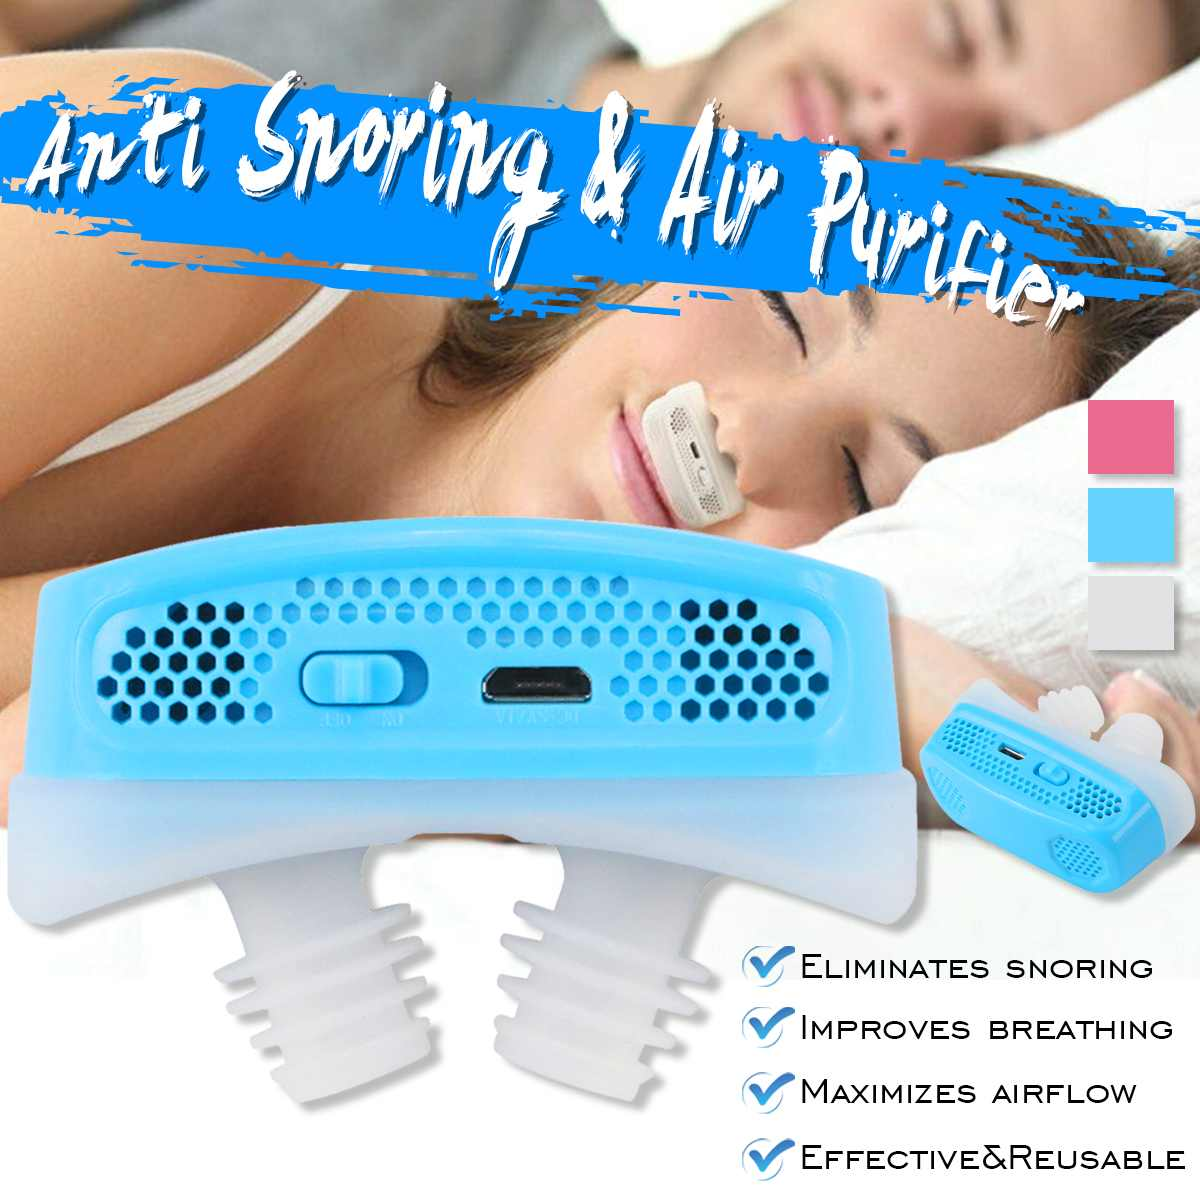 Upgrade Electric Silicone Anti Snore Nose Stopping Breathing Apparatus Guard Sleeping Aid Mini Snoring Device Relieve SnoringUpgrade Electric Silicone Anti Snore Nose Stopping Breathing Apparatus Guard Sleeping Aid Mini Snoring Device Relieve Snoring